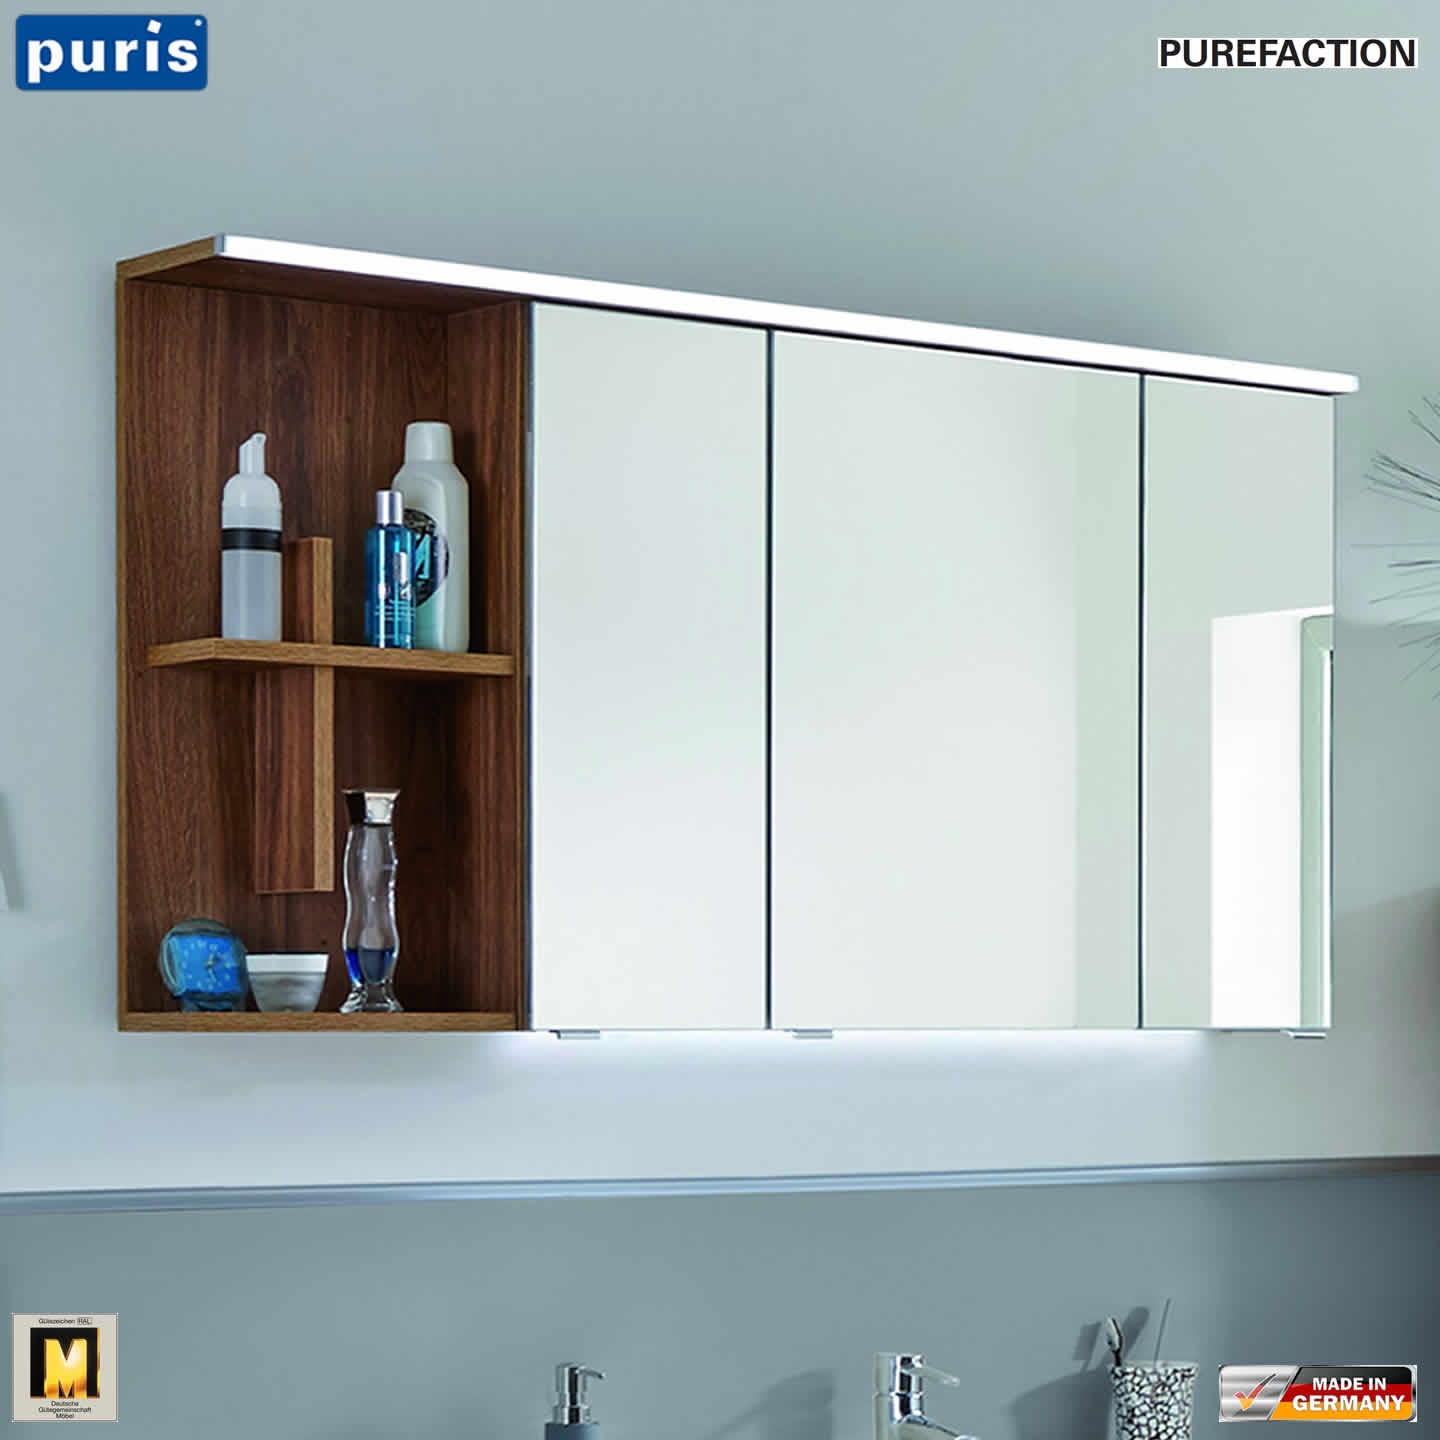 puris purefaction led spiegelschrank 120 cm regal mit. Black Bedroom Furniture Sets. Home Design Ideas